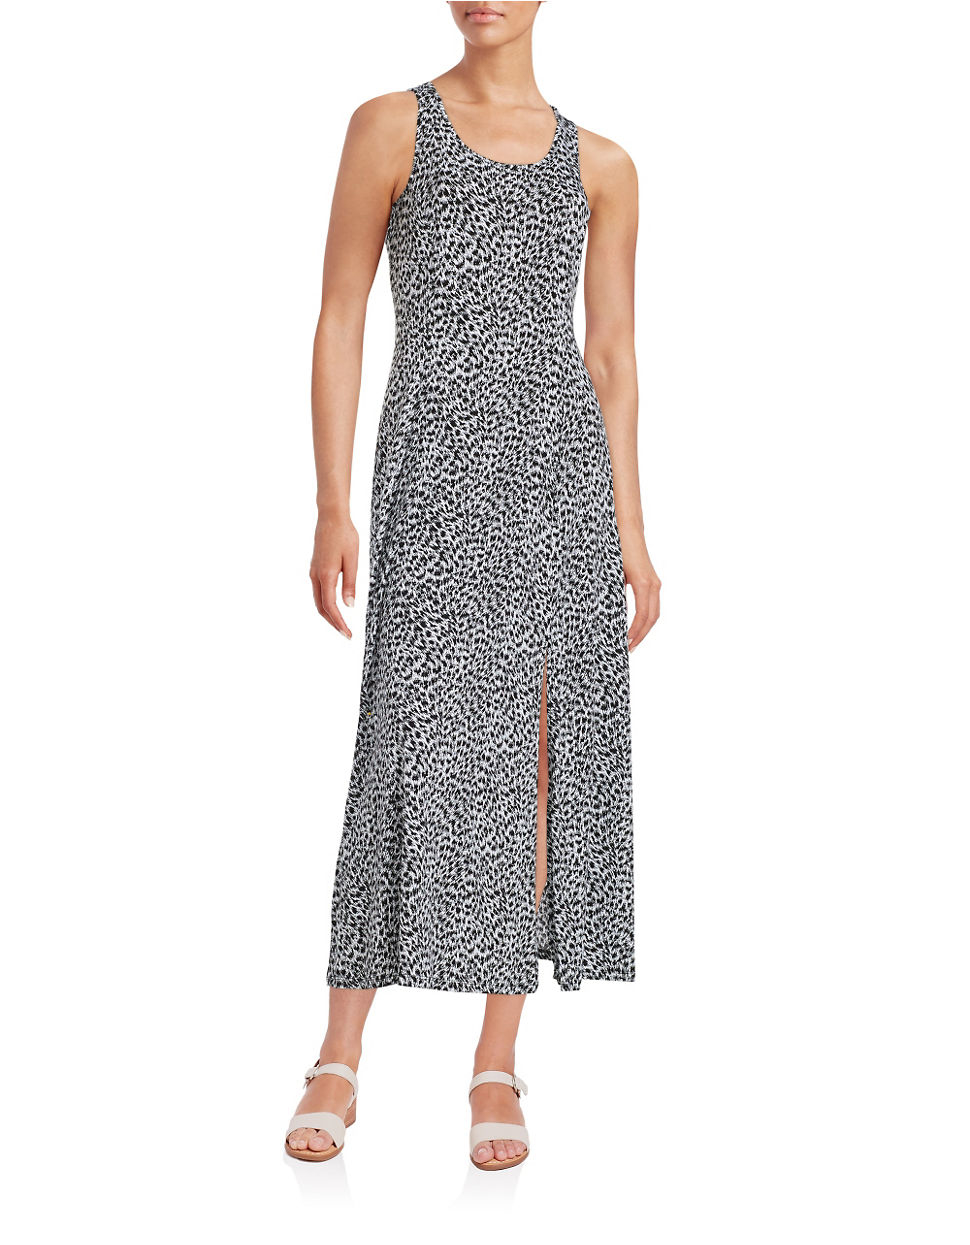 Michael Kors Laukut Pori : Michael kors geometricprint maxi dress in black lyst